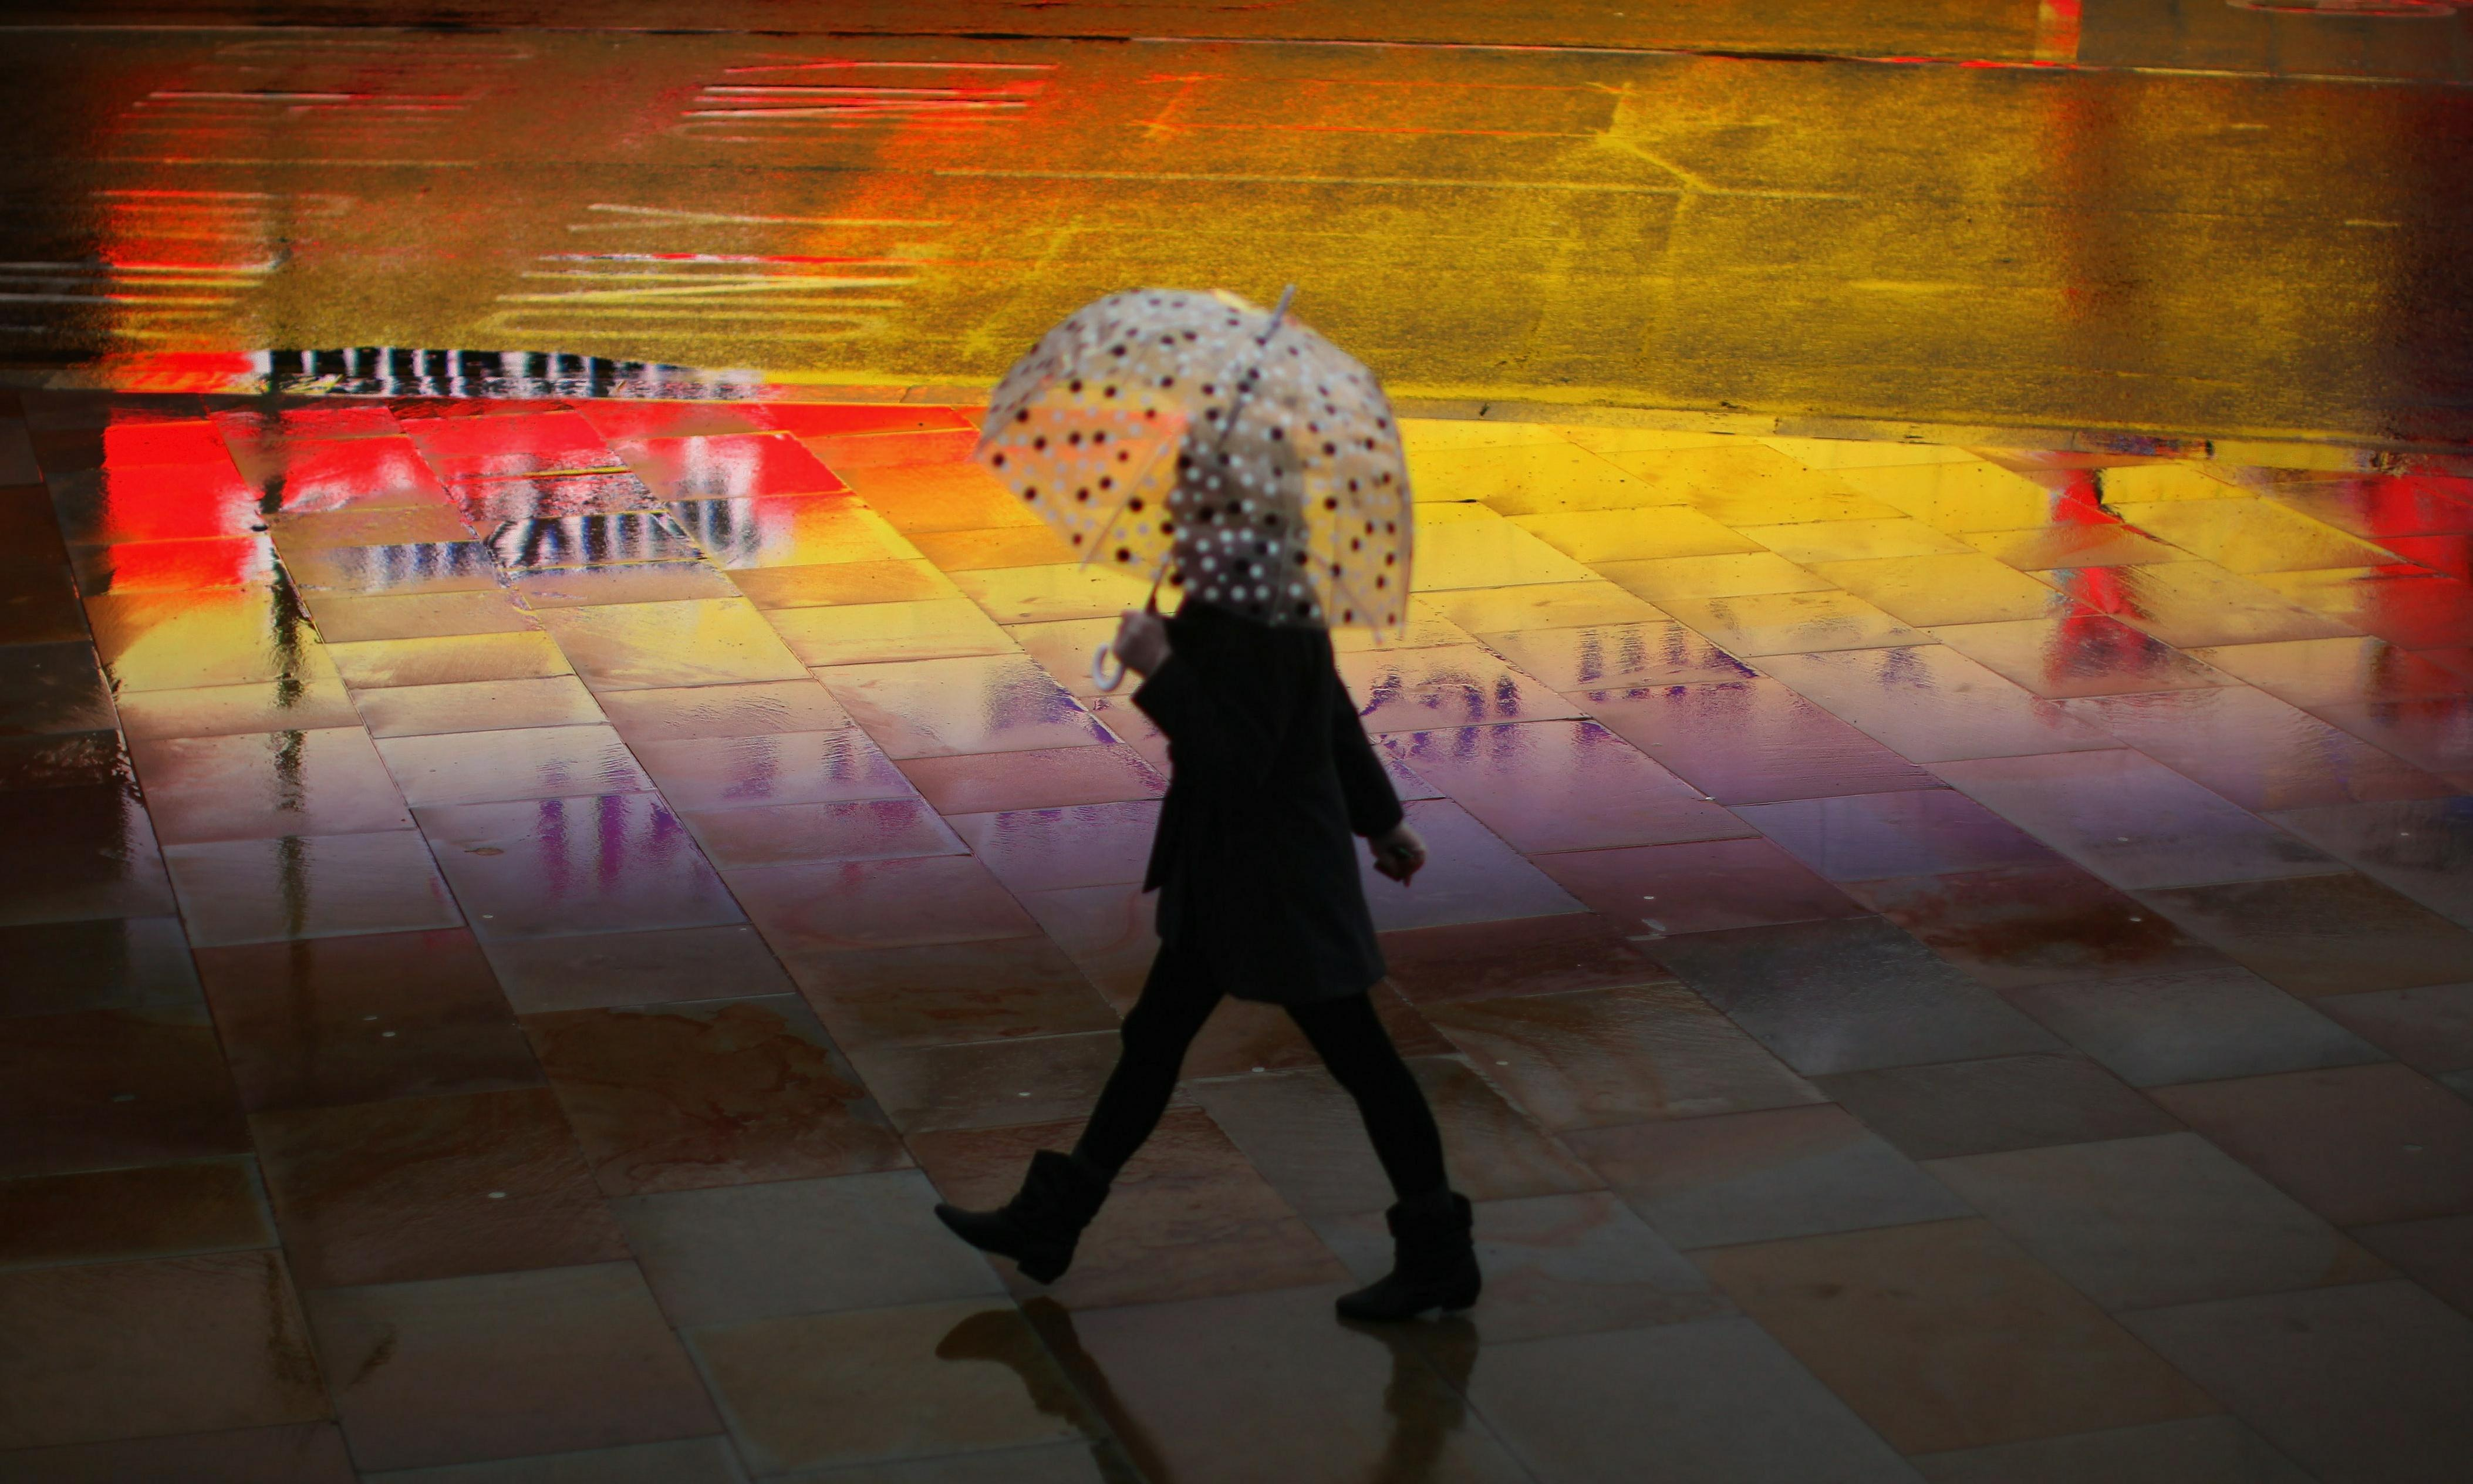 Polling day weather to be wet and cold, say forecasters